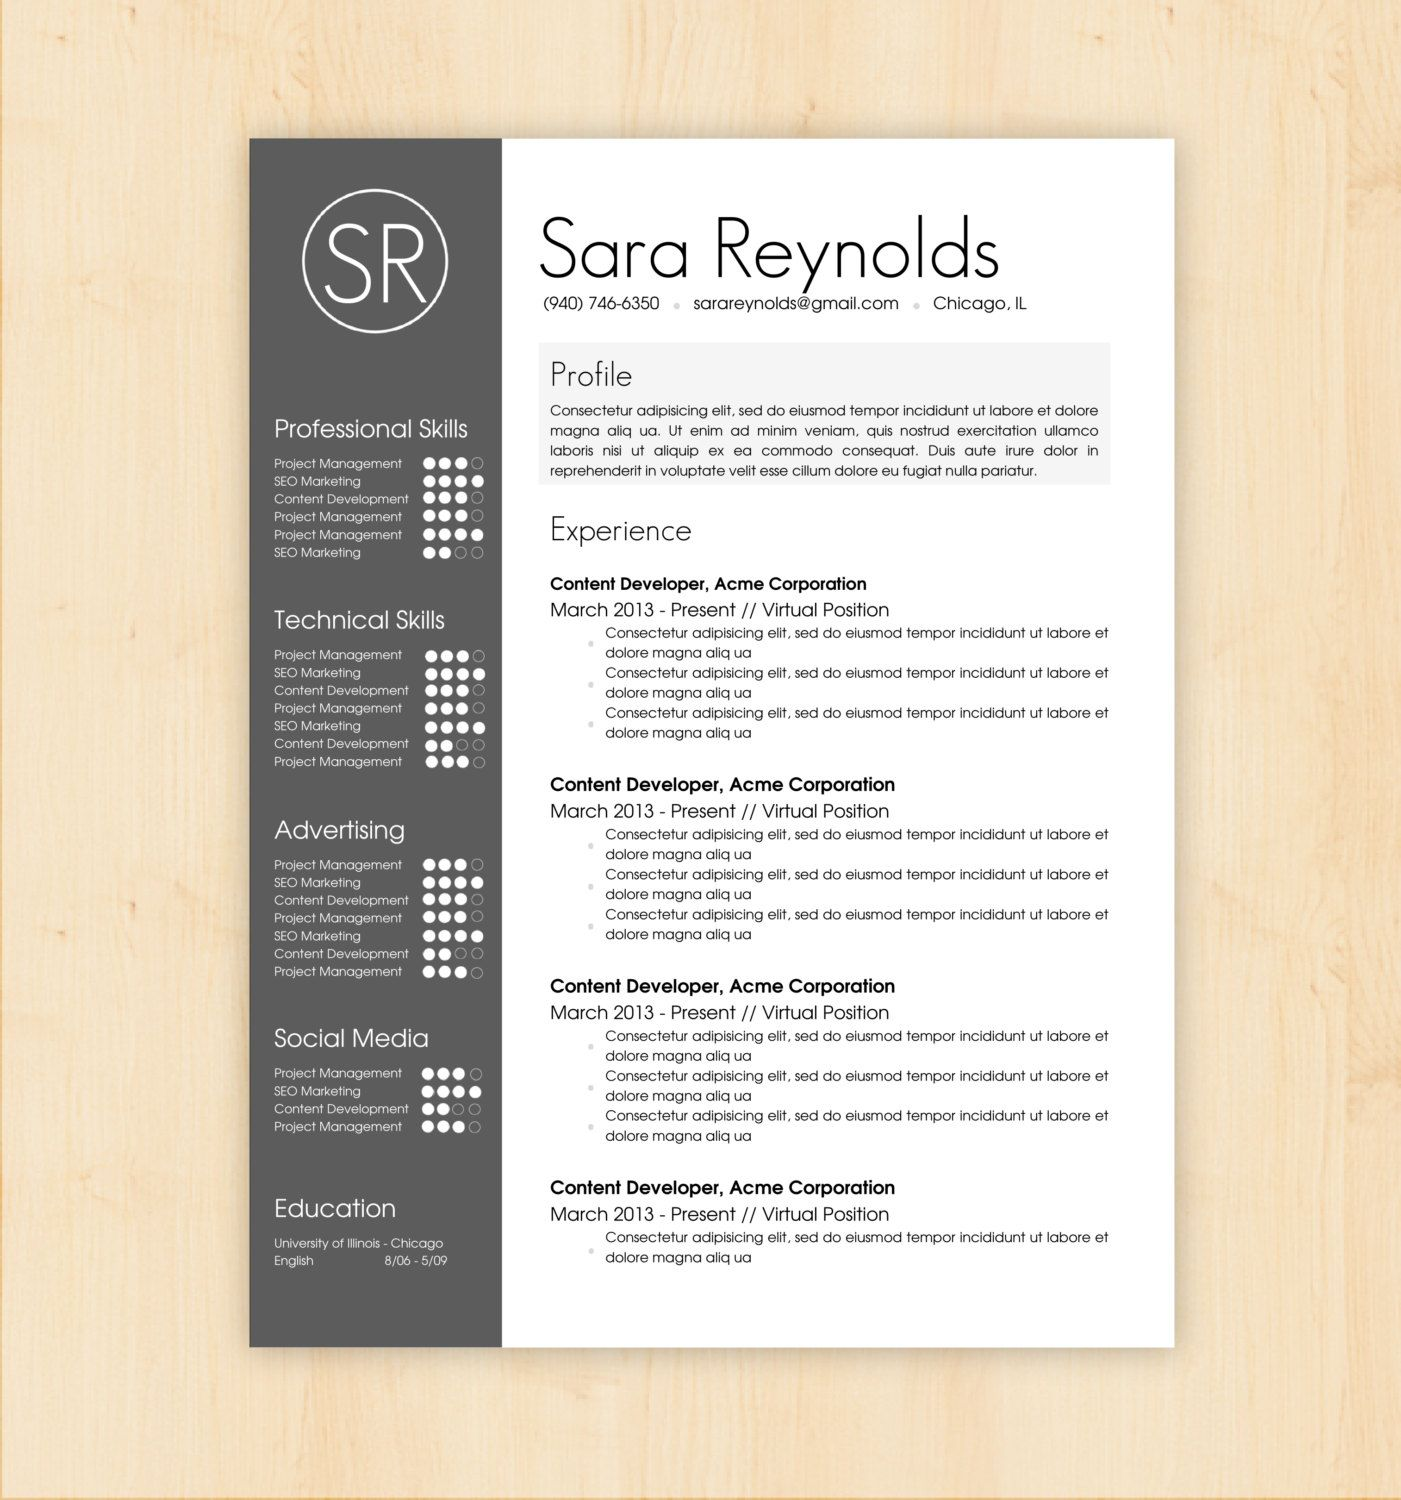 Resume Template U0026 Cover Letter Template, CV Template W/Business Card  Template   Modern Resume W Skills Word Document Template A4, US Letter  Resume Examples In Word Format